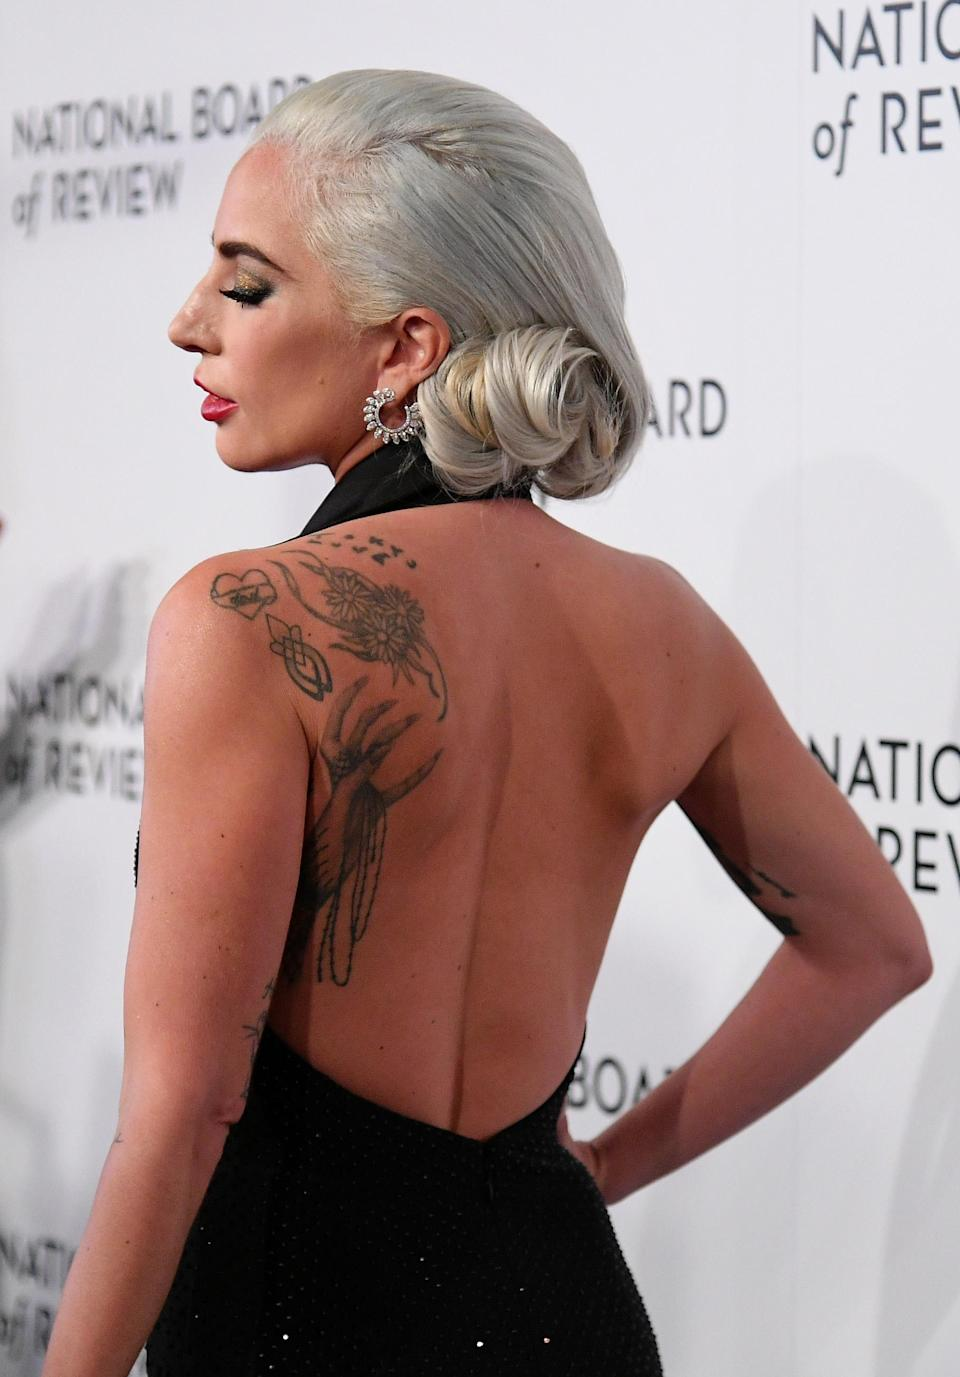 """<p>Lady Gaga's back is adorned in tattoos with a daisy chain and monster claw (in tribute to her fans) sitting pretty. Interestingly, the singer only has ink on the left side of her body after her father <a rel=""""nofollow noopener"""" href=""""https://www.eonline.com/uk/news/585294/lady-gaga-gets-huge-monster-paw-tattoo-on-her-back-flashes-naked-butt-in-the-process-see-pics"""" target=""""_blank"""" data-ylk=""""slk:asked"""" class=""""link rapid-noclick-resp"""">asked</a> her to """"keep one side slightly normal"""". <em>[Photo: Getty]</em> </p>"""